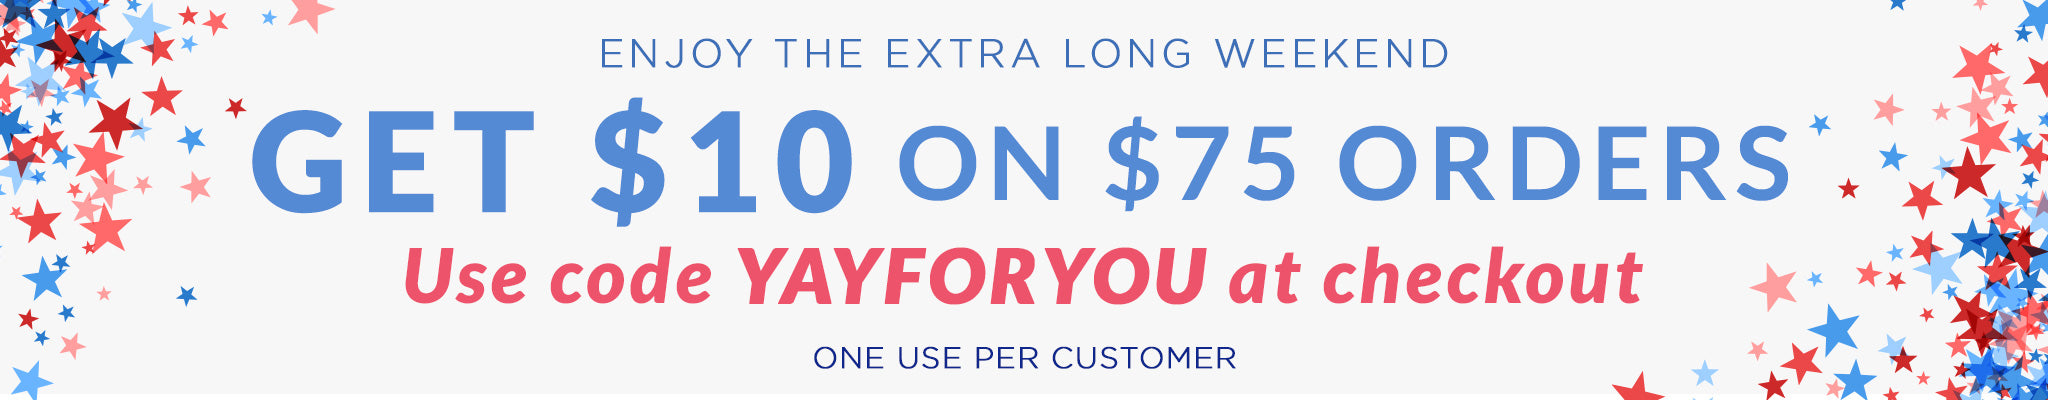 Enjoy the Extra Long Weekend | Get $10 on $75 Orders | Use code YAYFORYOU at checkout | One use per customer